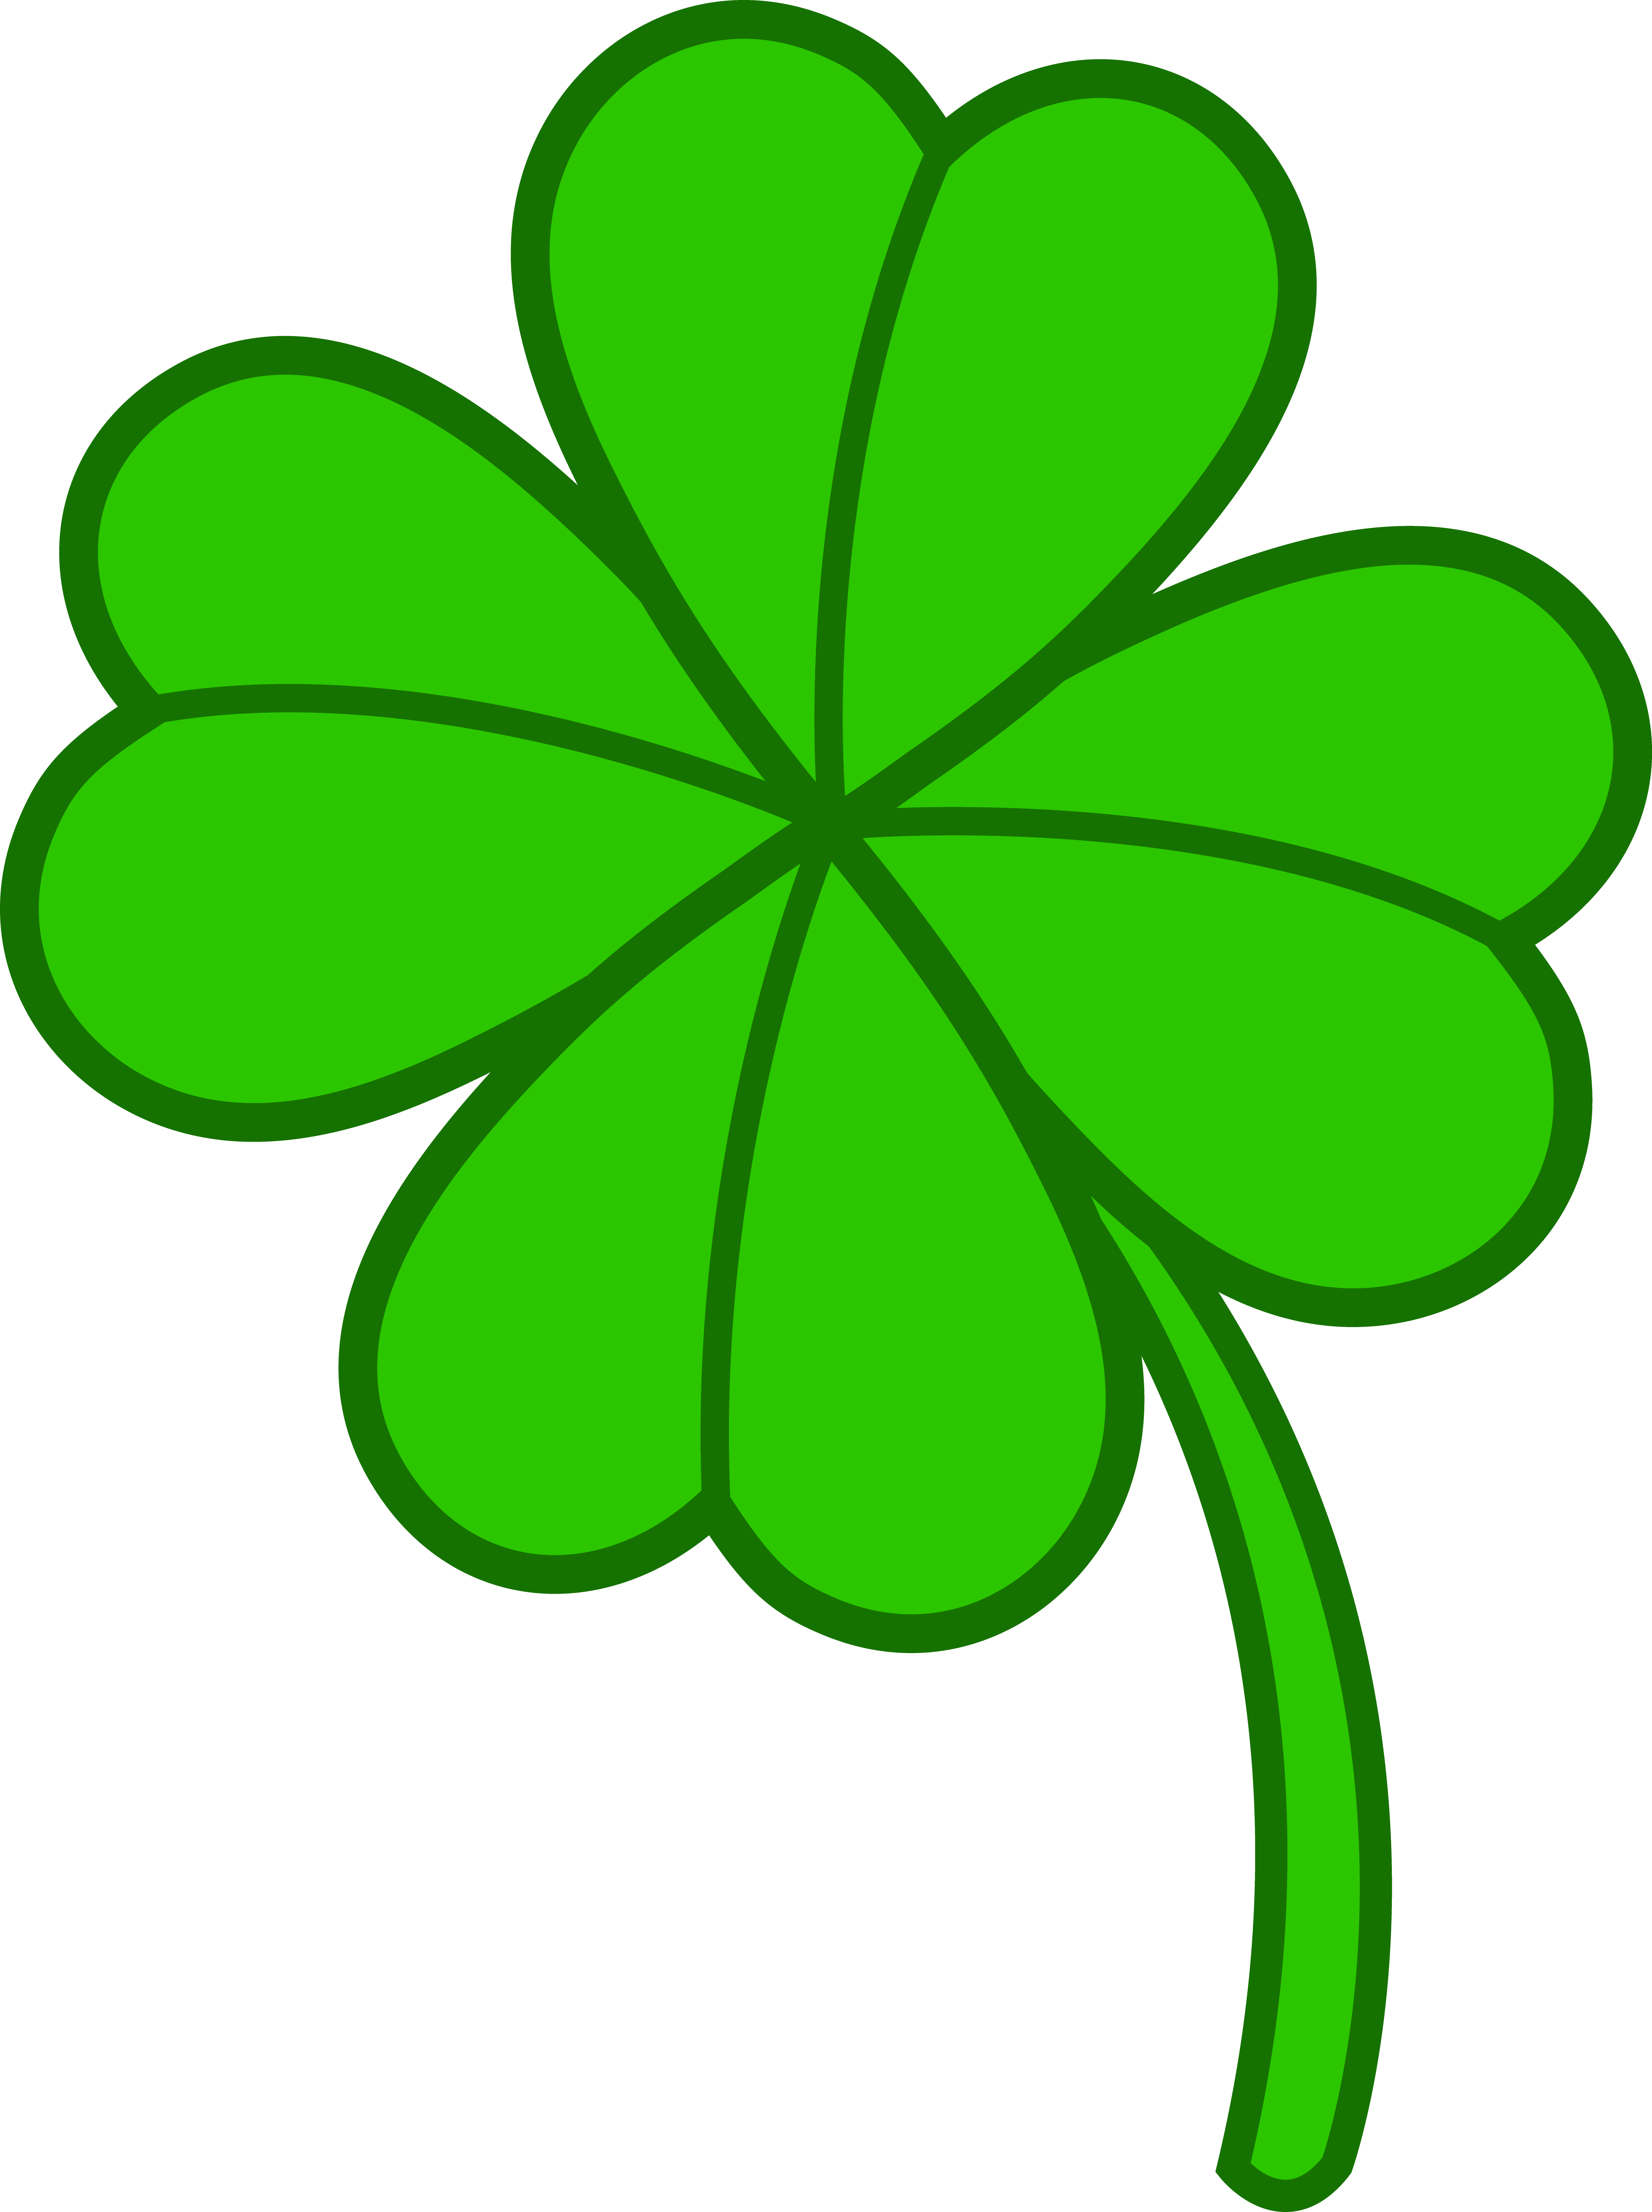 Little leaf awesome sauce. Clover clipart three